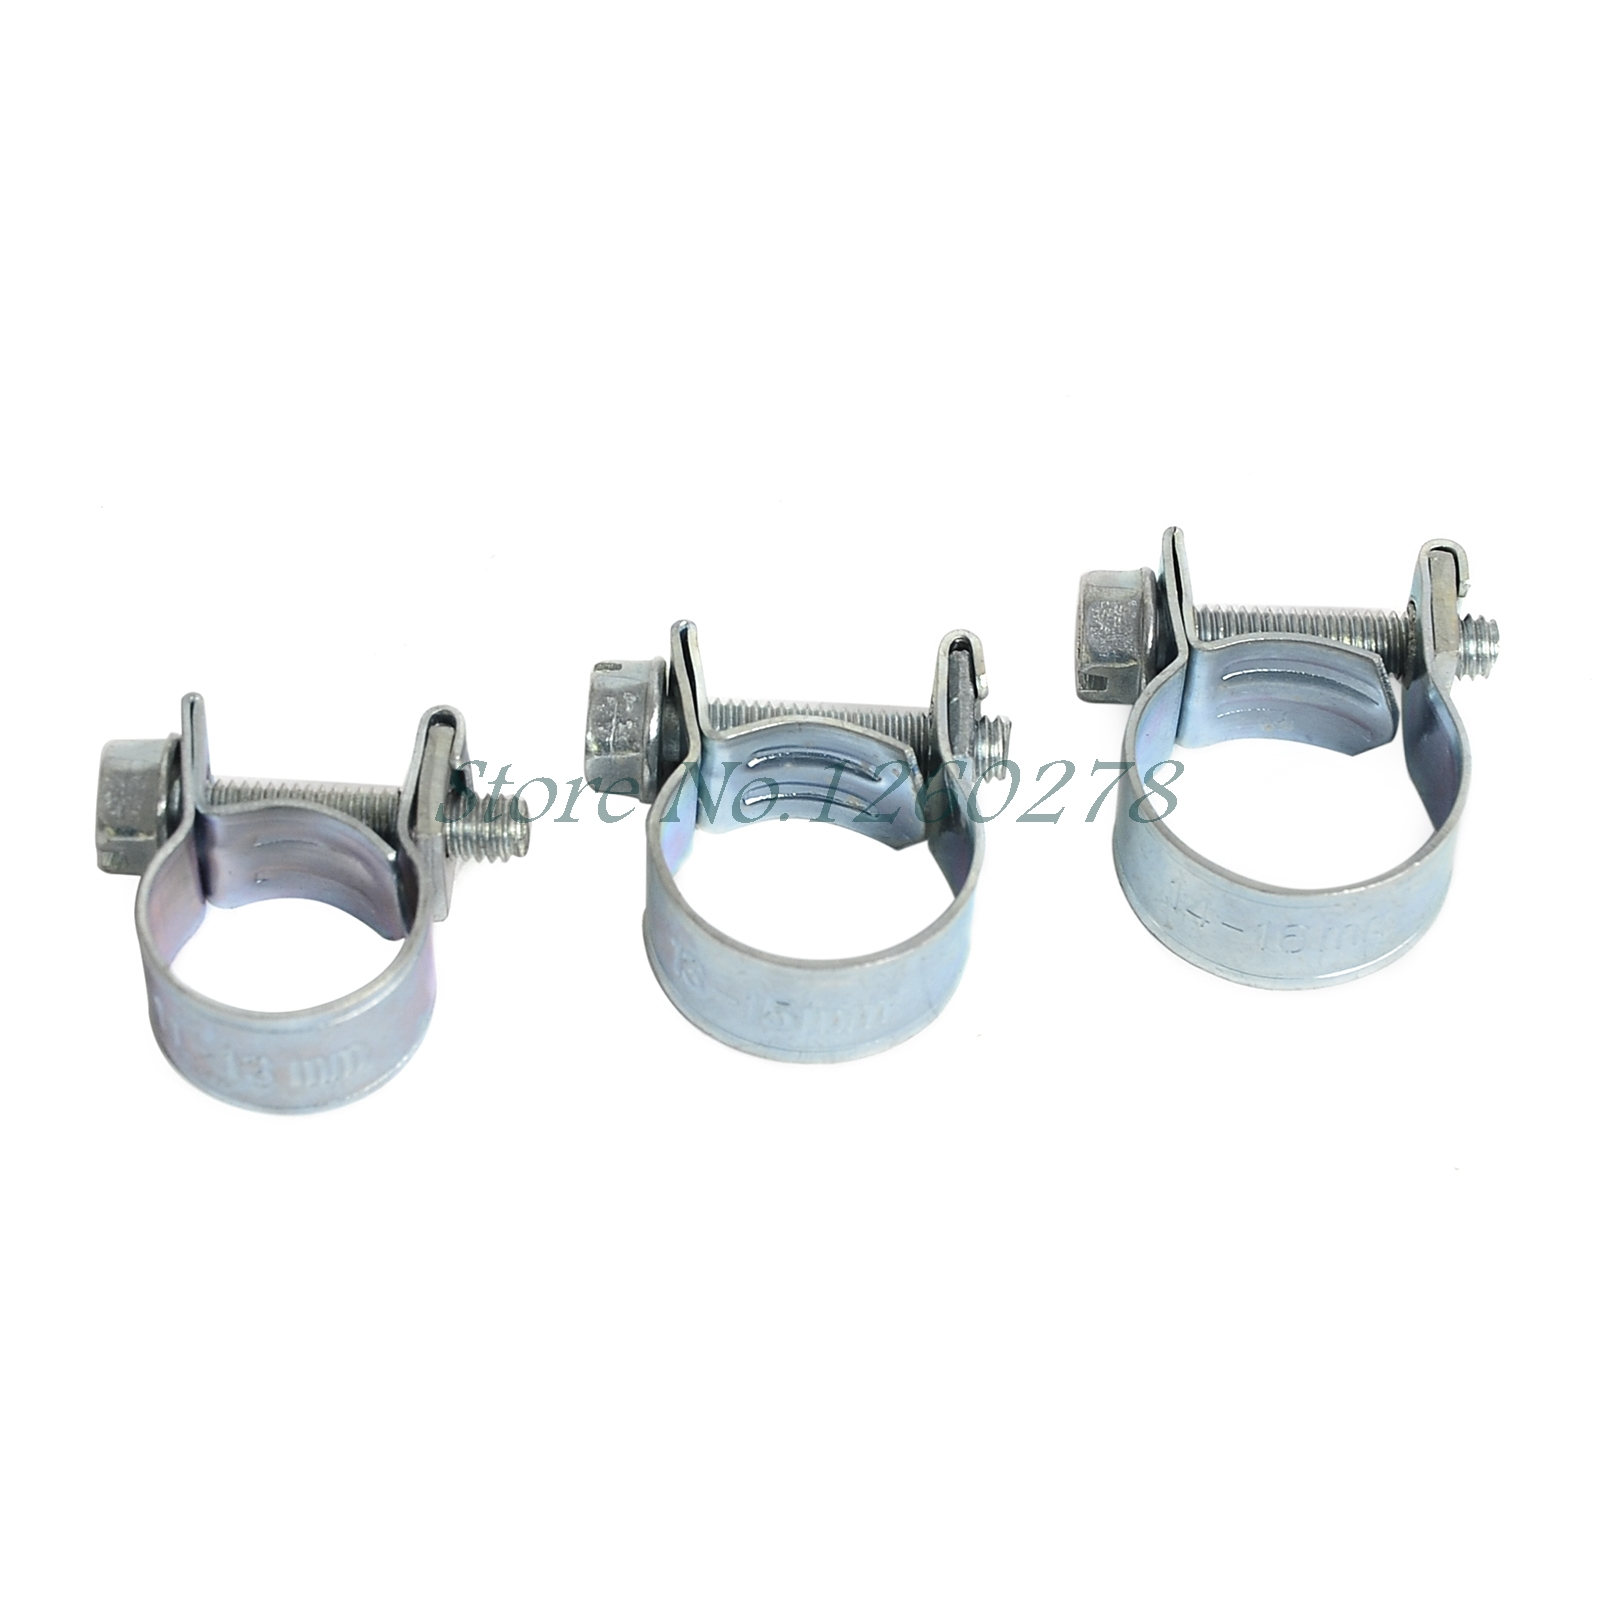 """US NEW 1//4/"""", 5//16/"""", 3//8/"""" FUEL INJECTION HOSE CLAMP AUTO Fuel clamps 30PCS"""